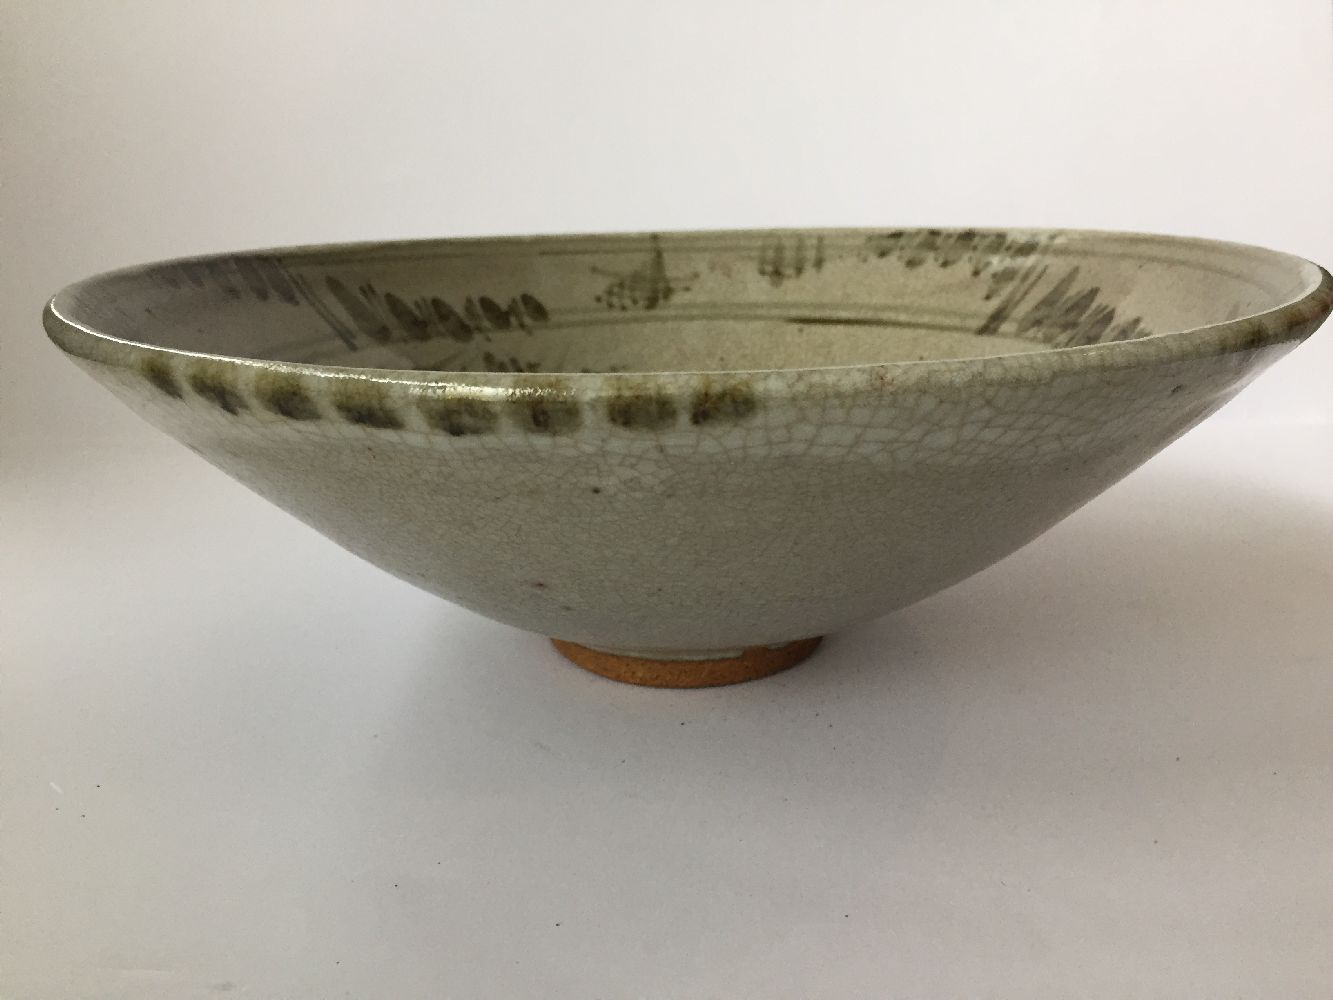 Three Thai Sawankhalok bowls, 15th-16th century, each covered in a celadon glaze, two with fluted - Image 8 of 27